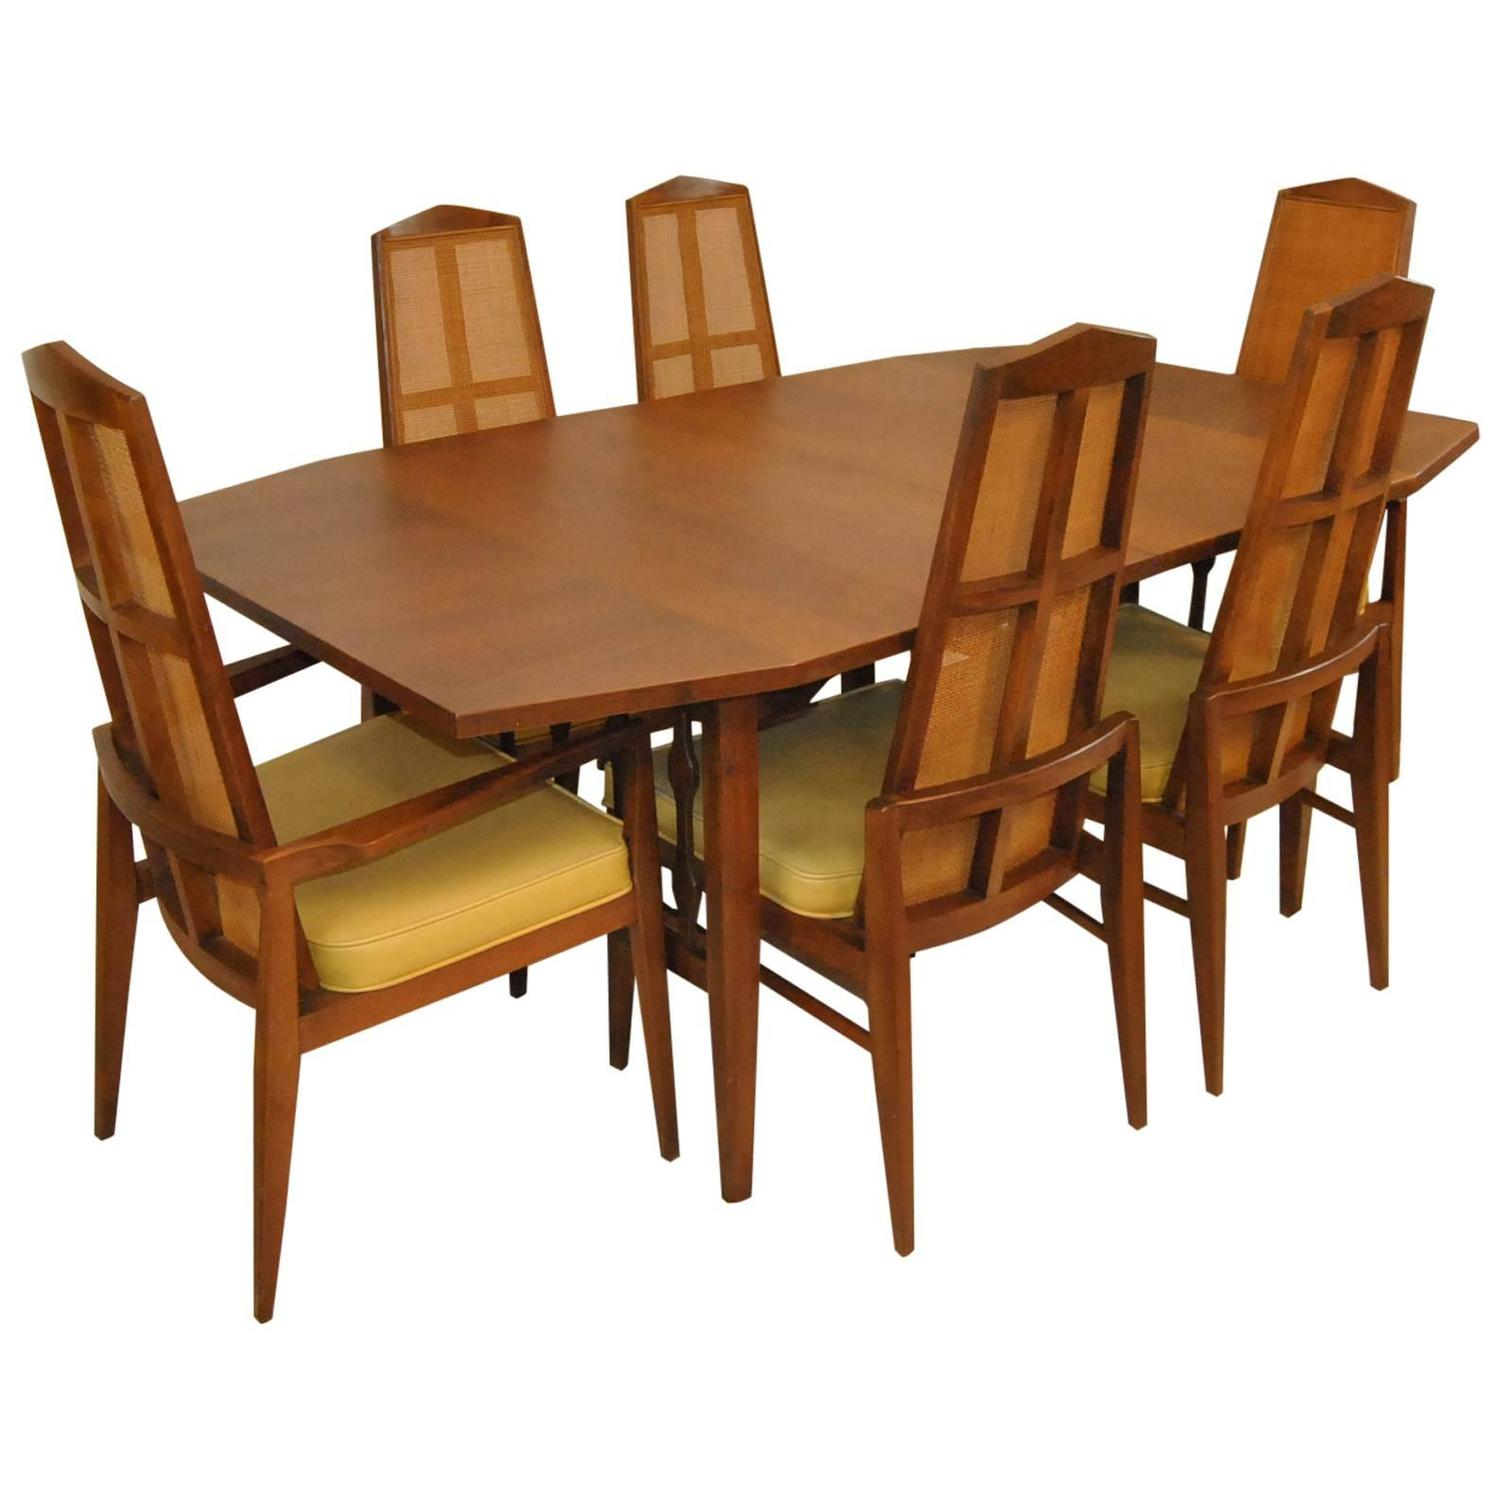 Mid-Century Modern Walnut Dining Set By Foster-McDavid For